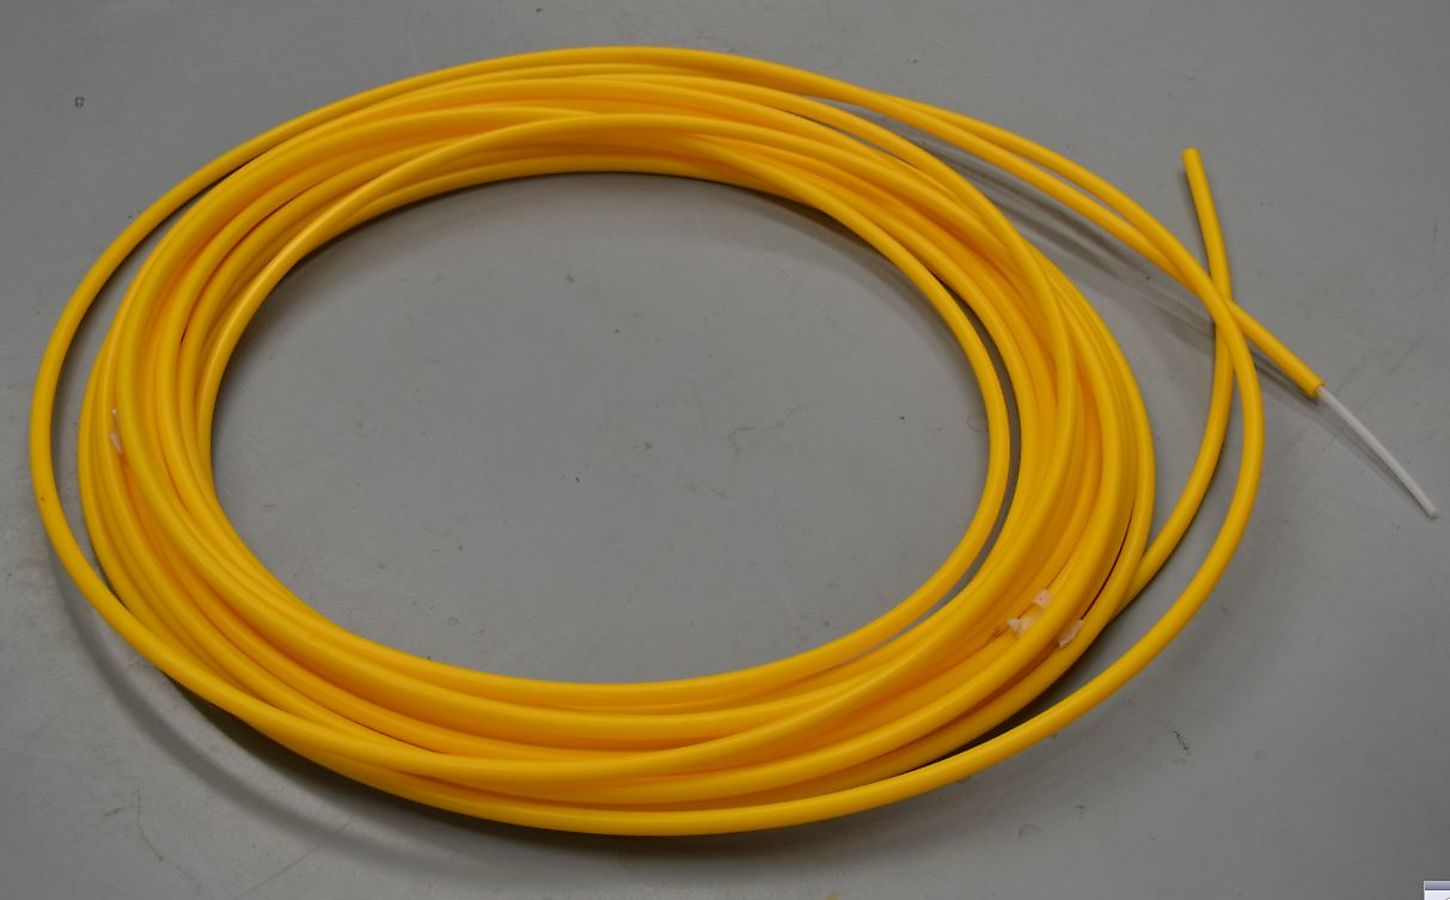 Double-walled-tubing